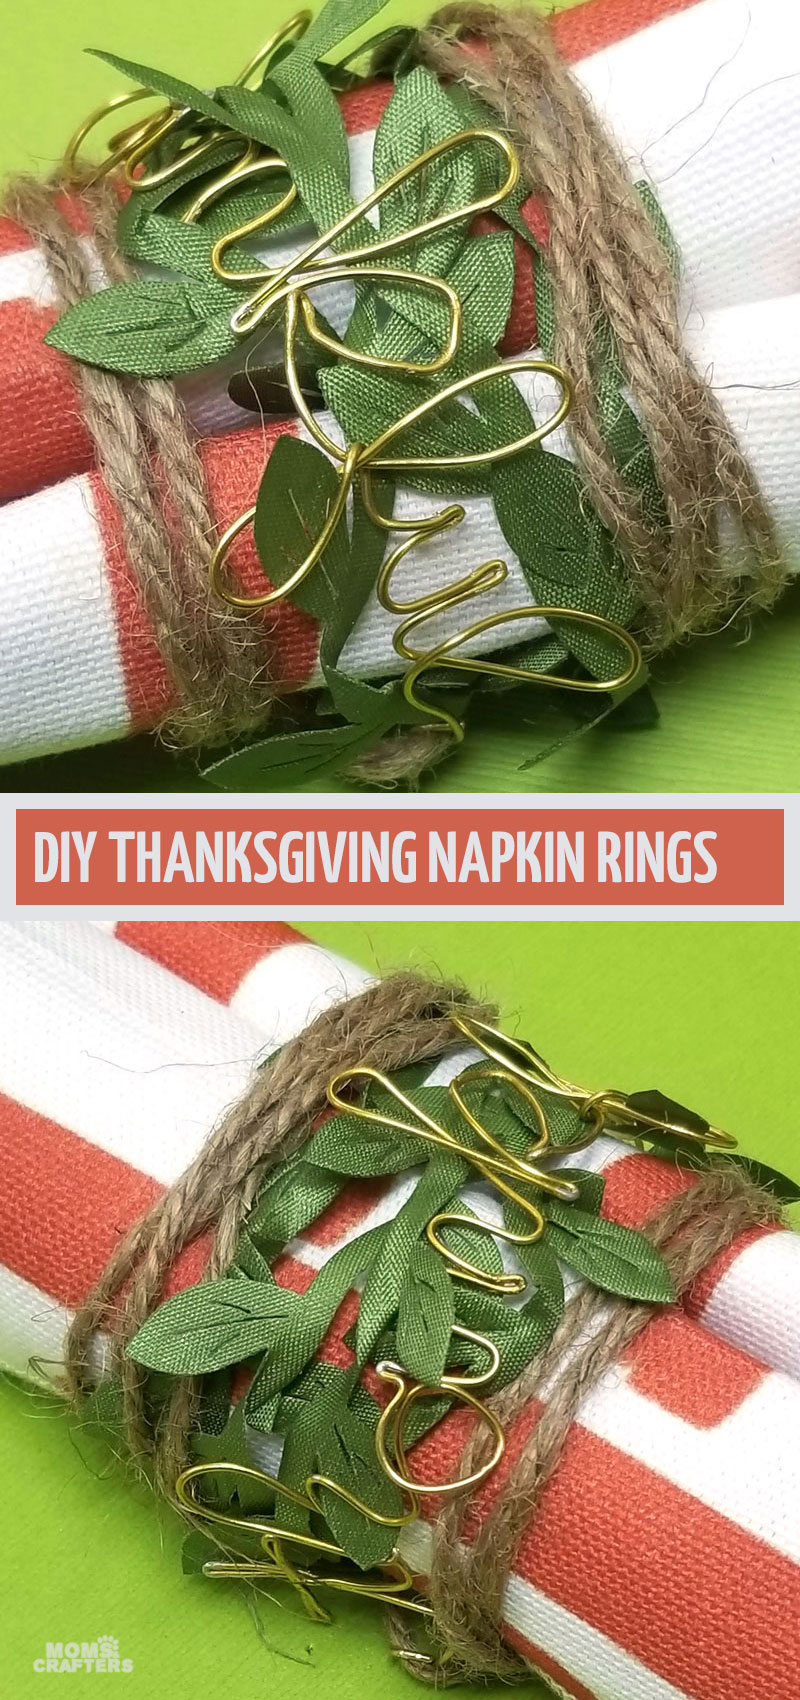 Craft some DIY Thanksgiving napkin rings with leaves and twine and a gorgeous fall themed table setting! You can turn these into names instead of placecards. They make stunning table decorations!